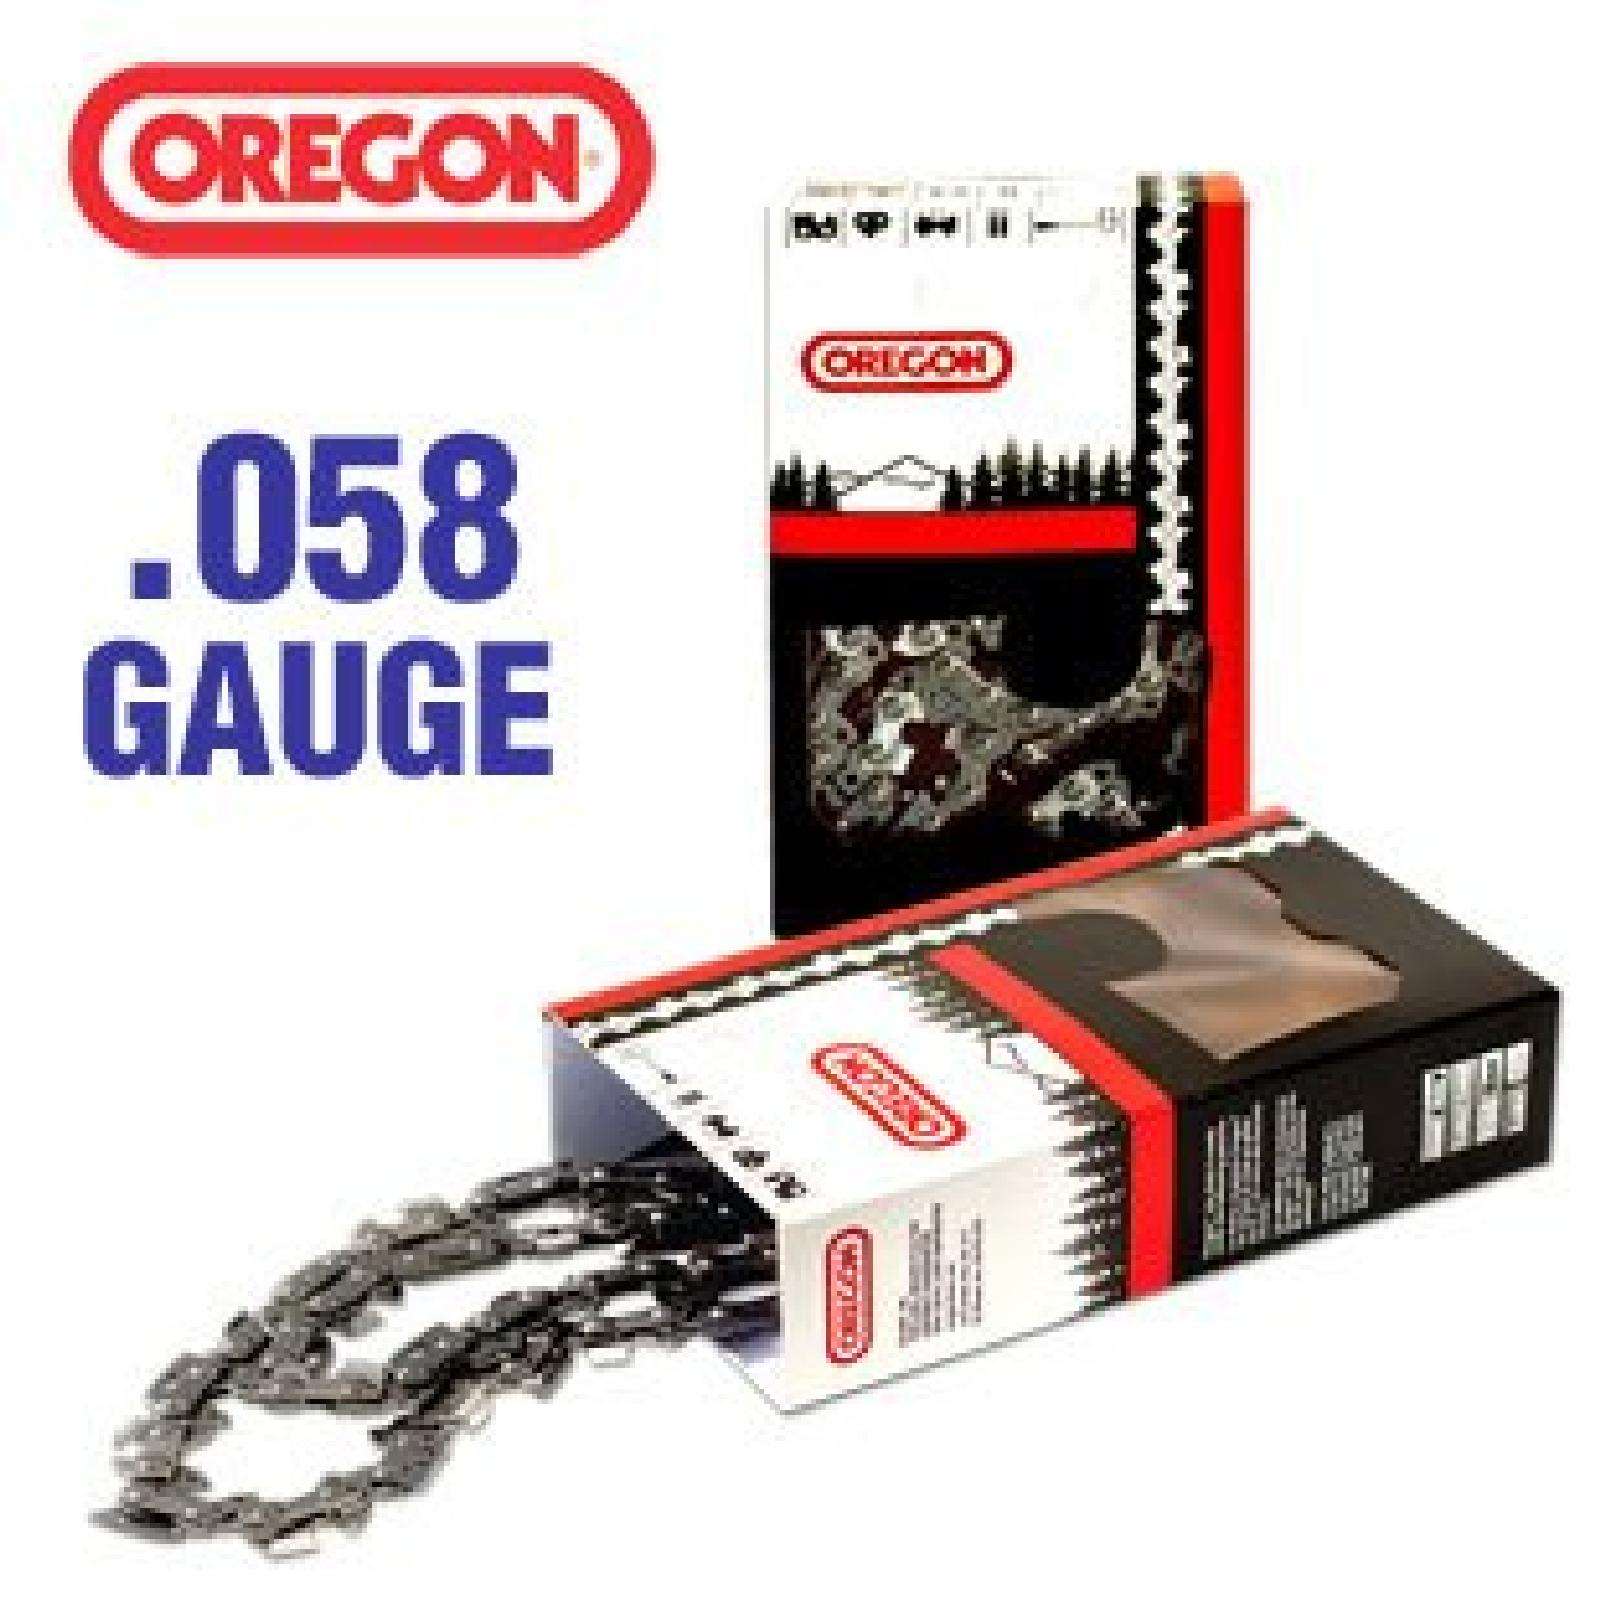 "POWERCUT SAW CHAIN, 3/8"" part# 73LPX072G by Oregon"